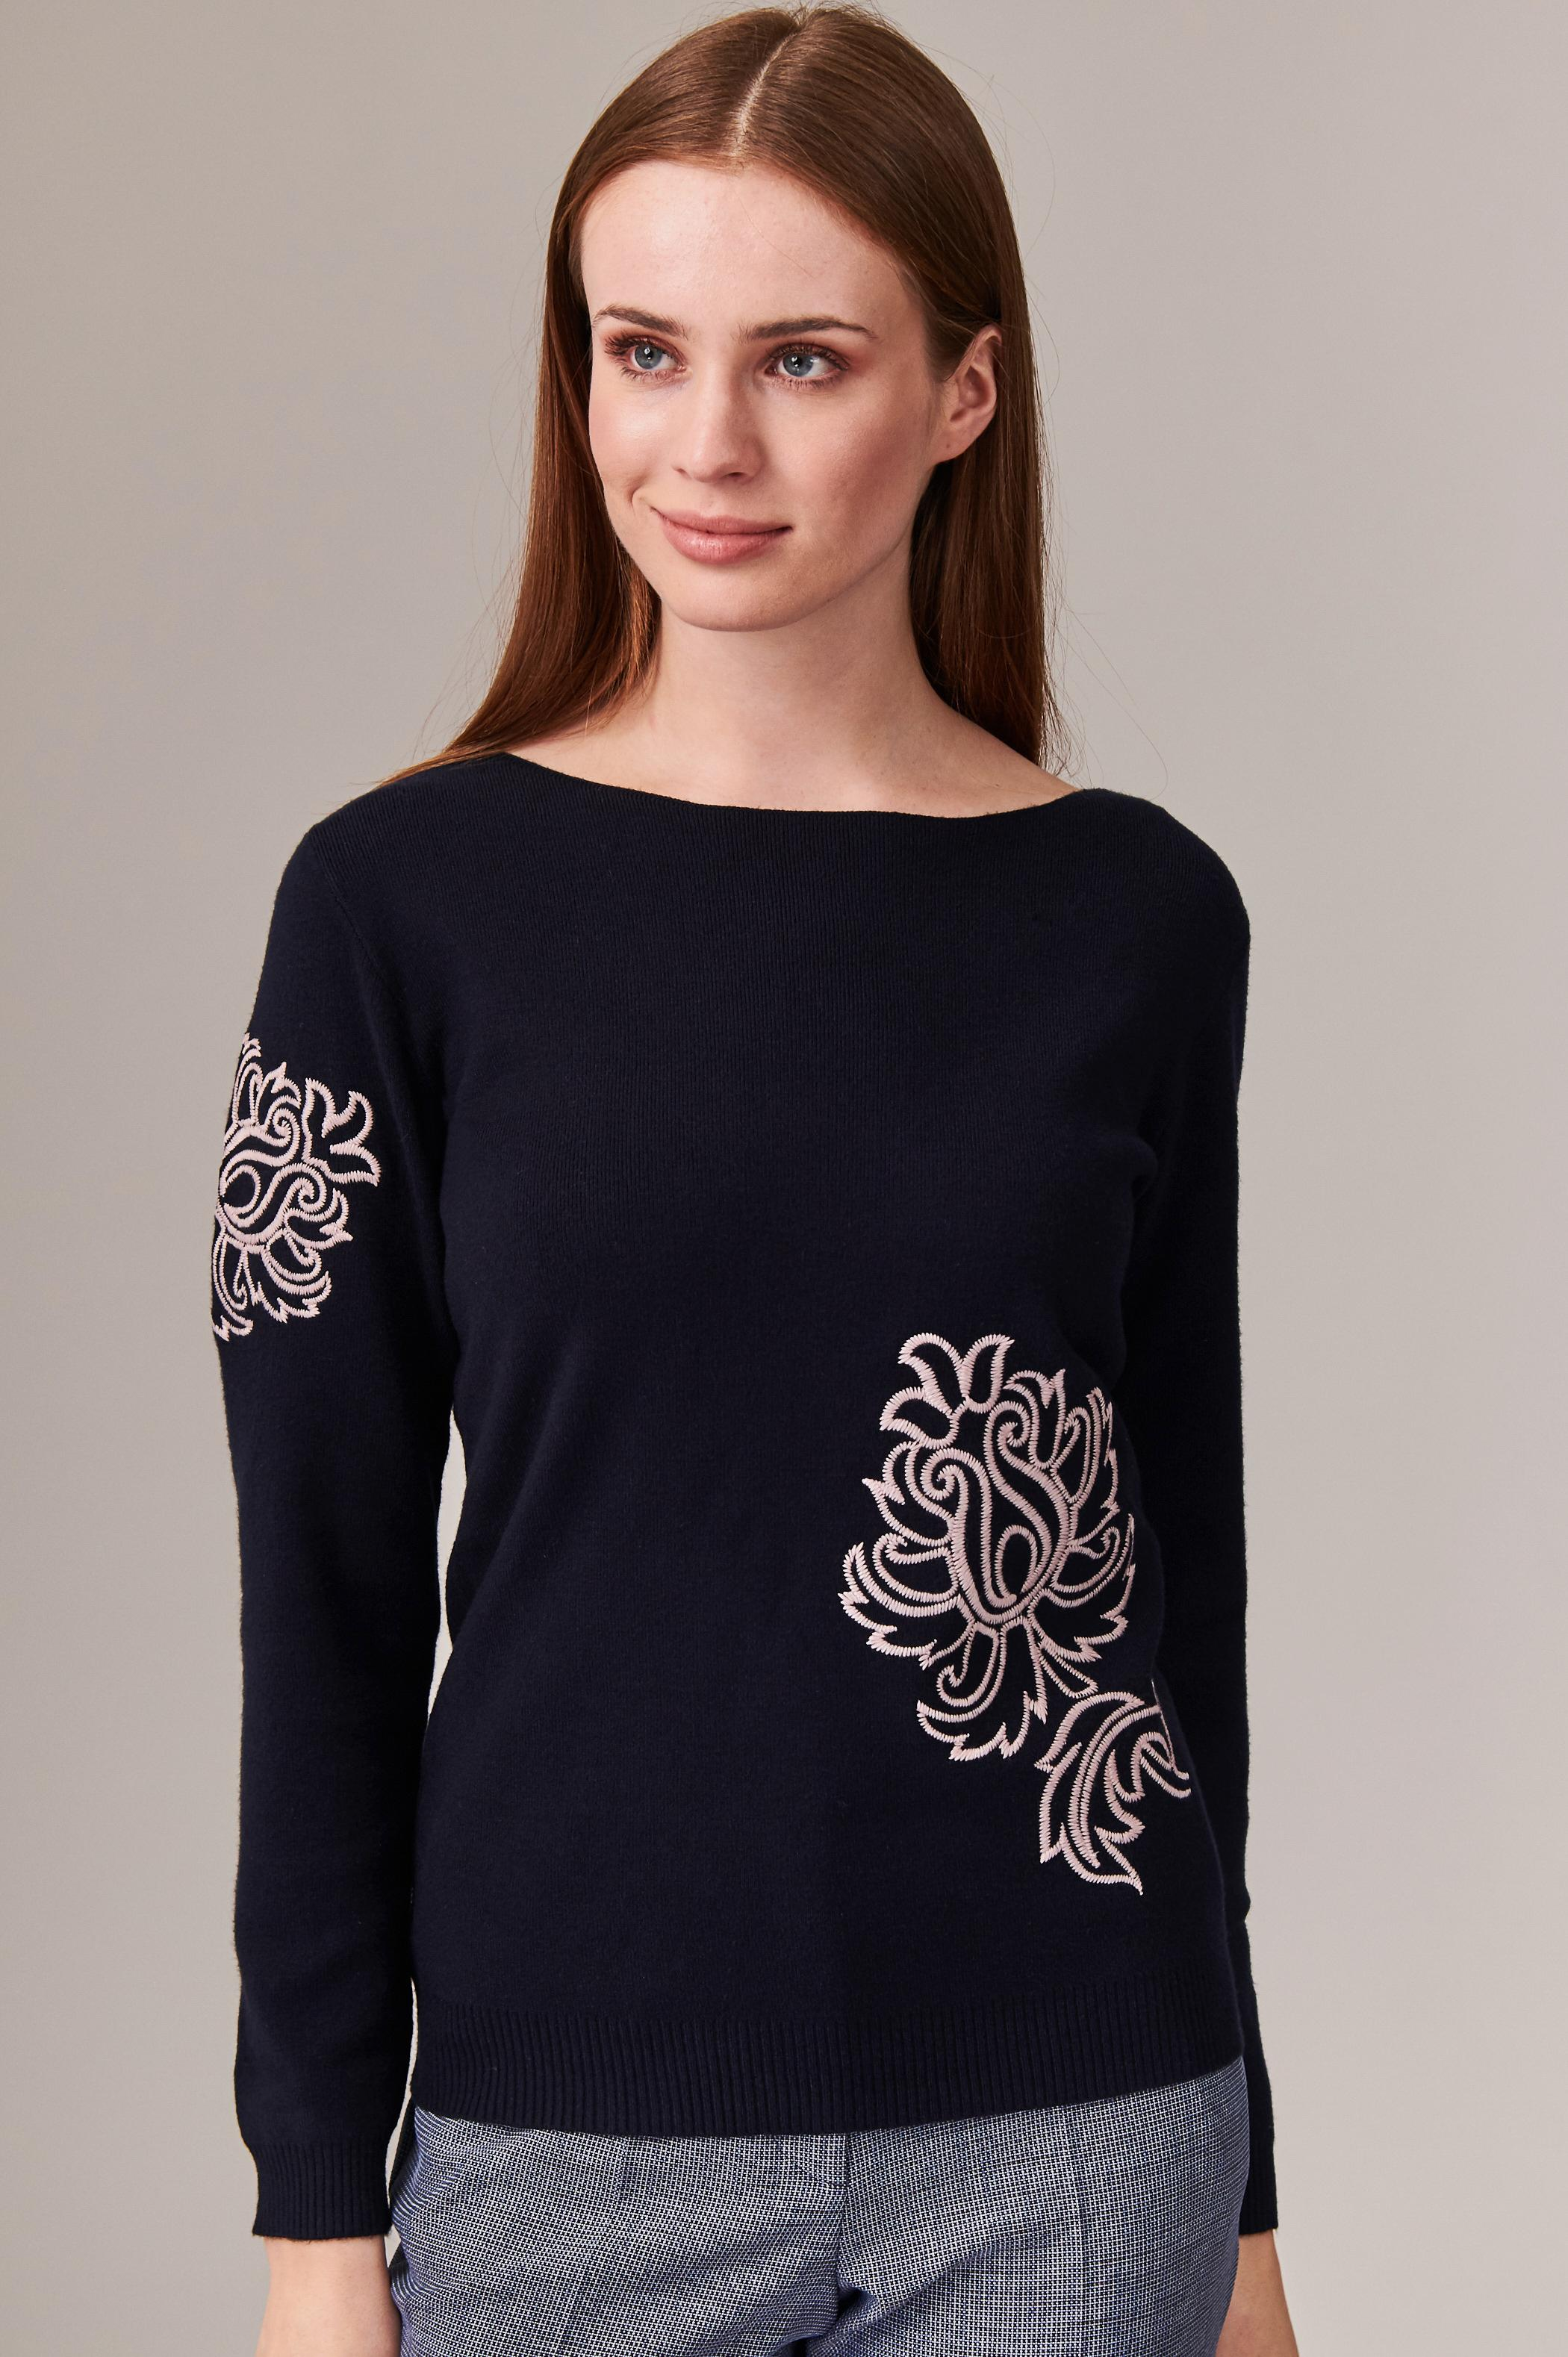 LADIES' SWEATER WITH EMBROIDERY ARTEWI